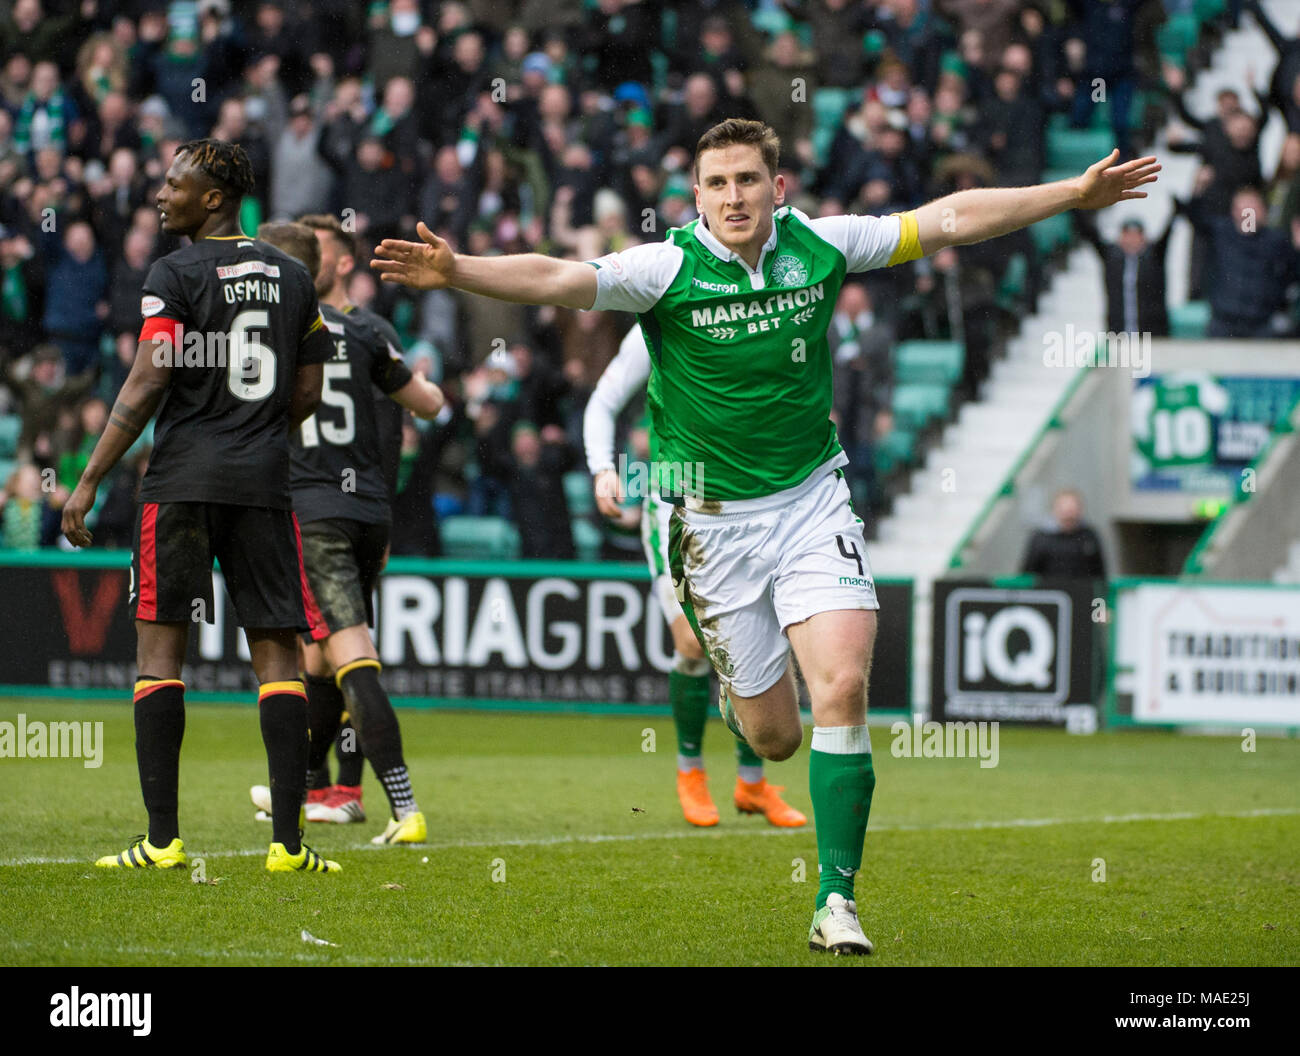 Edinburgh, UK, 31 Mar 2018.  Pic shows:  Hibs defender, Paul Hanlon, celebrates after scoring his side's second goal during the second half of the Scottish Premiereship clash between Hibernian and Partick Thistle at Easter Road Stadium, Edinburgh.  Credit: Alamy/Ian Jacobs - Stock Image